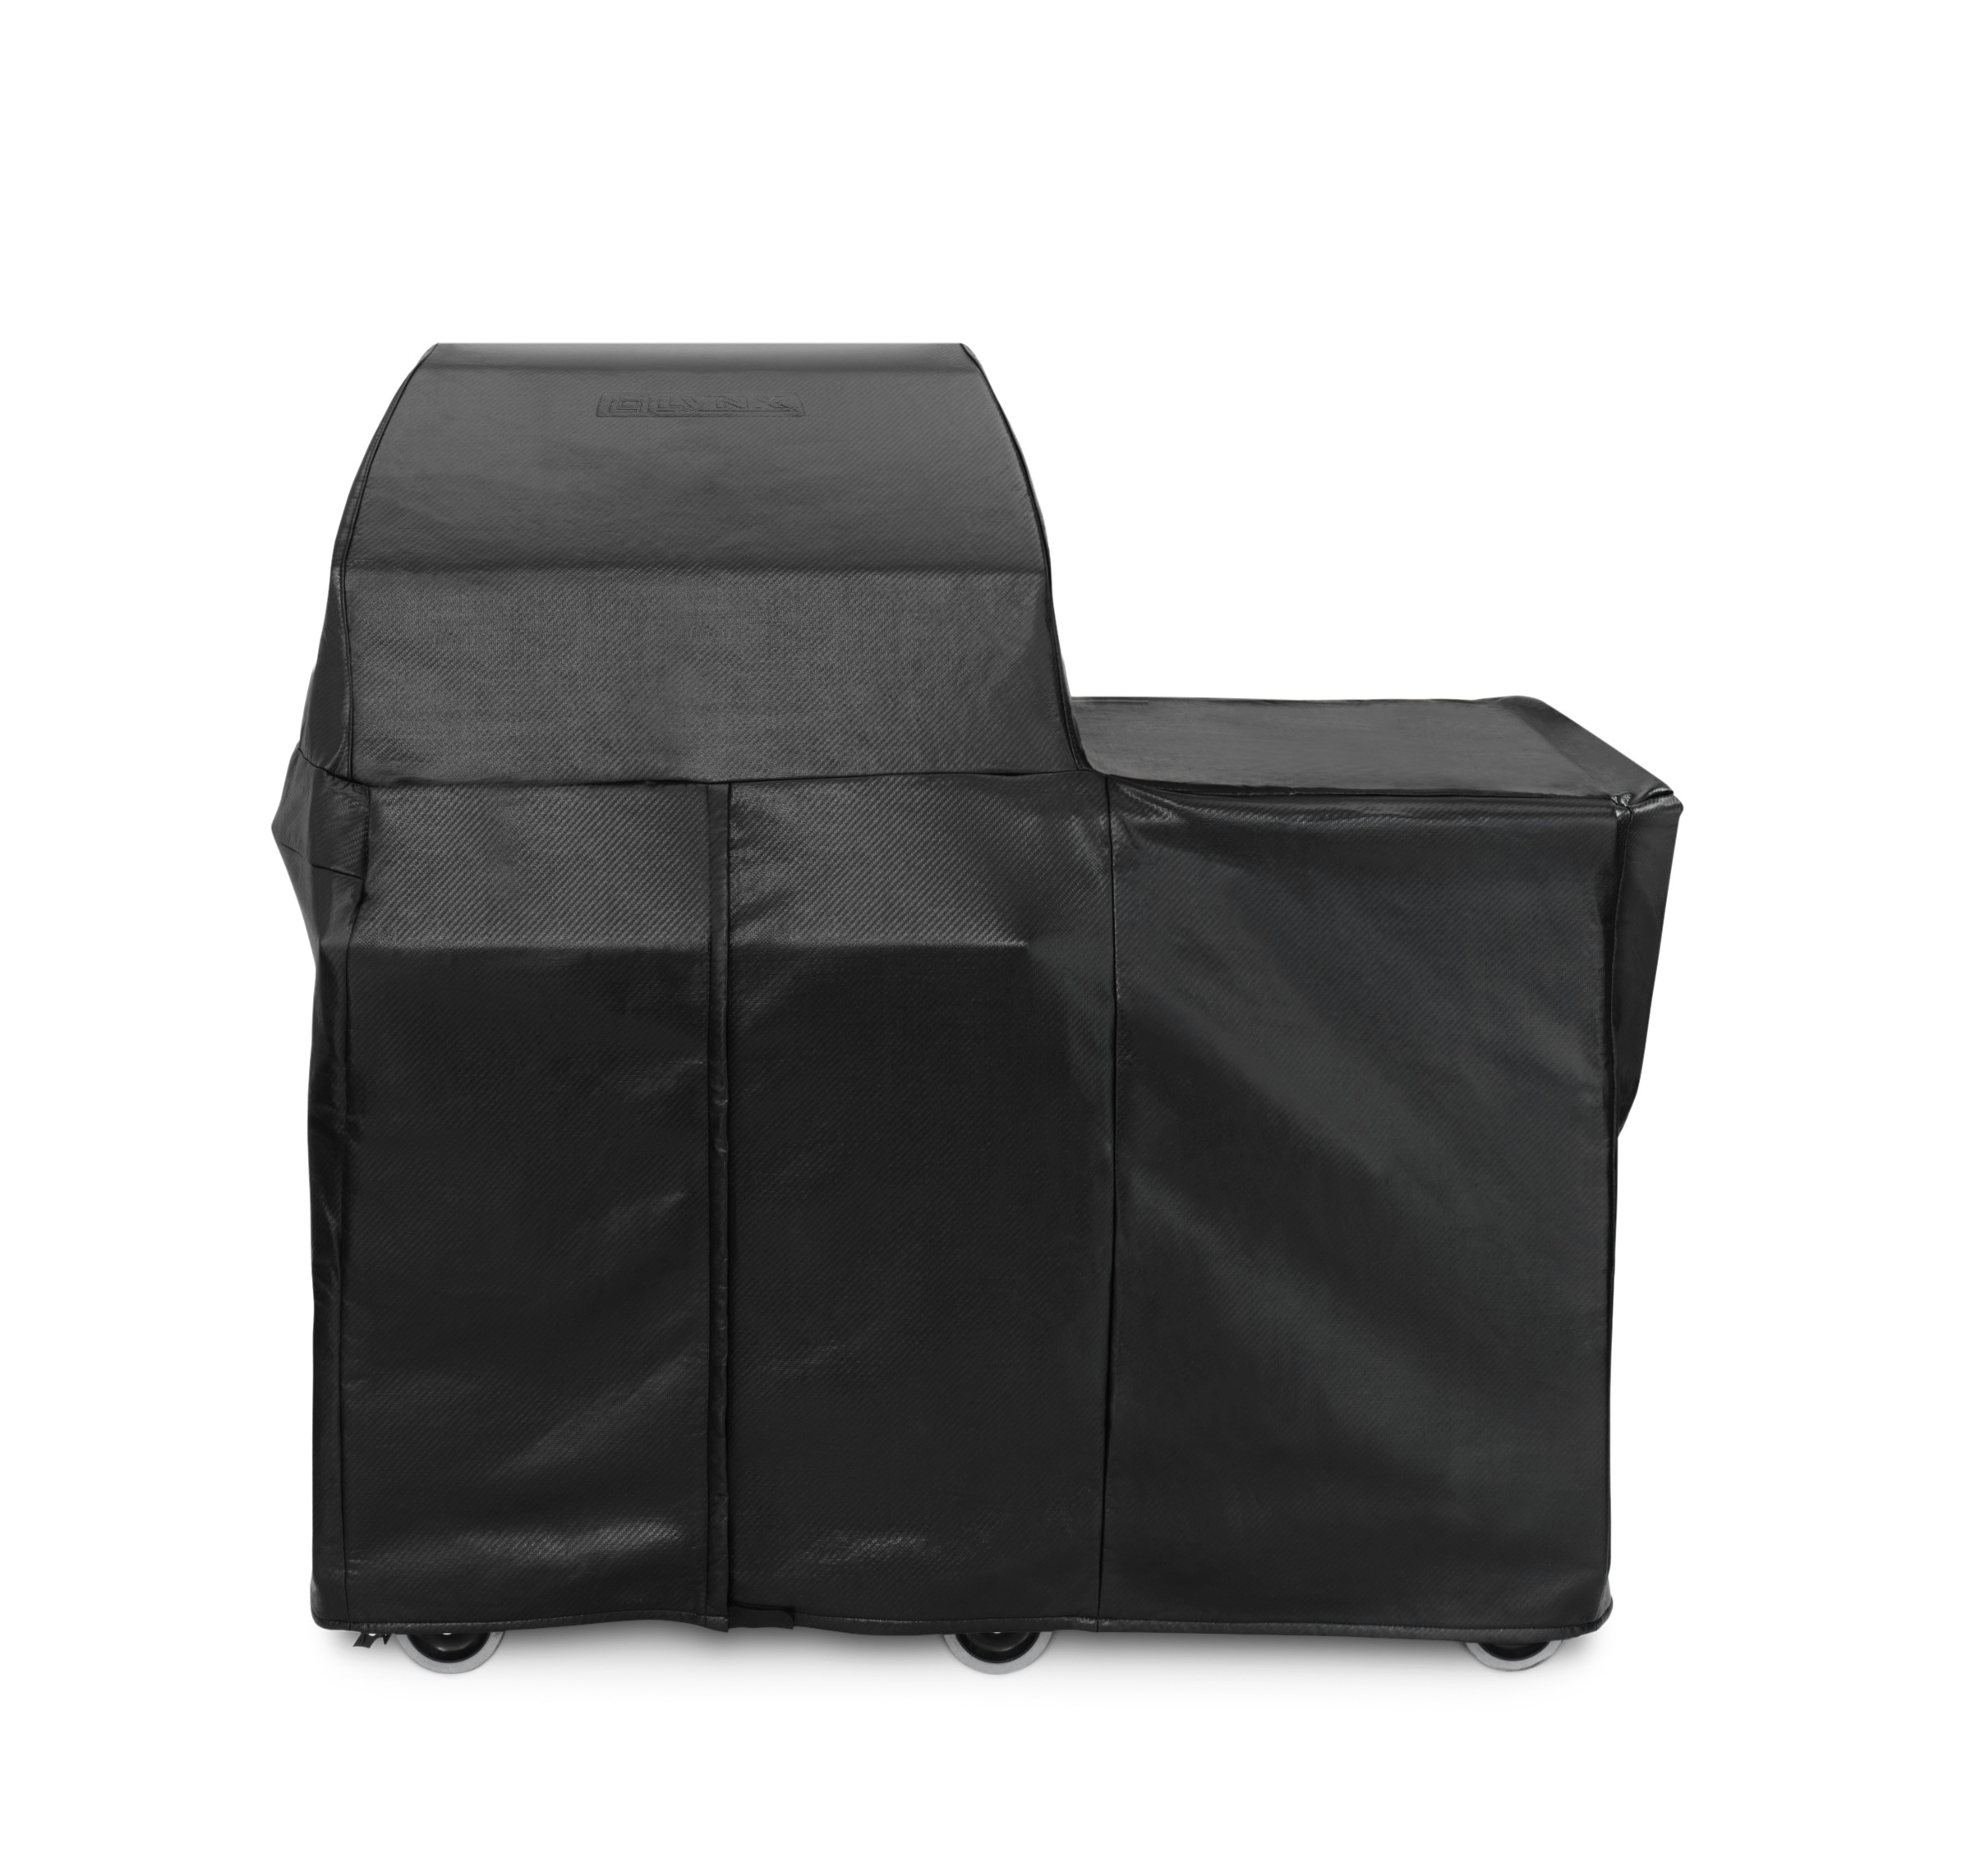 """Lynx 30"""" Grill or Smoker Carbon Fiber Vinly Cover  (Mobile Kitchen Cart)"""